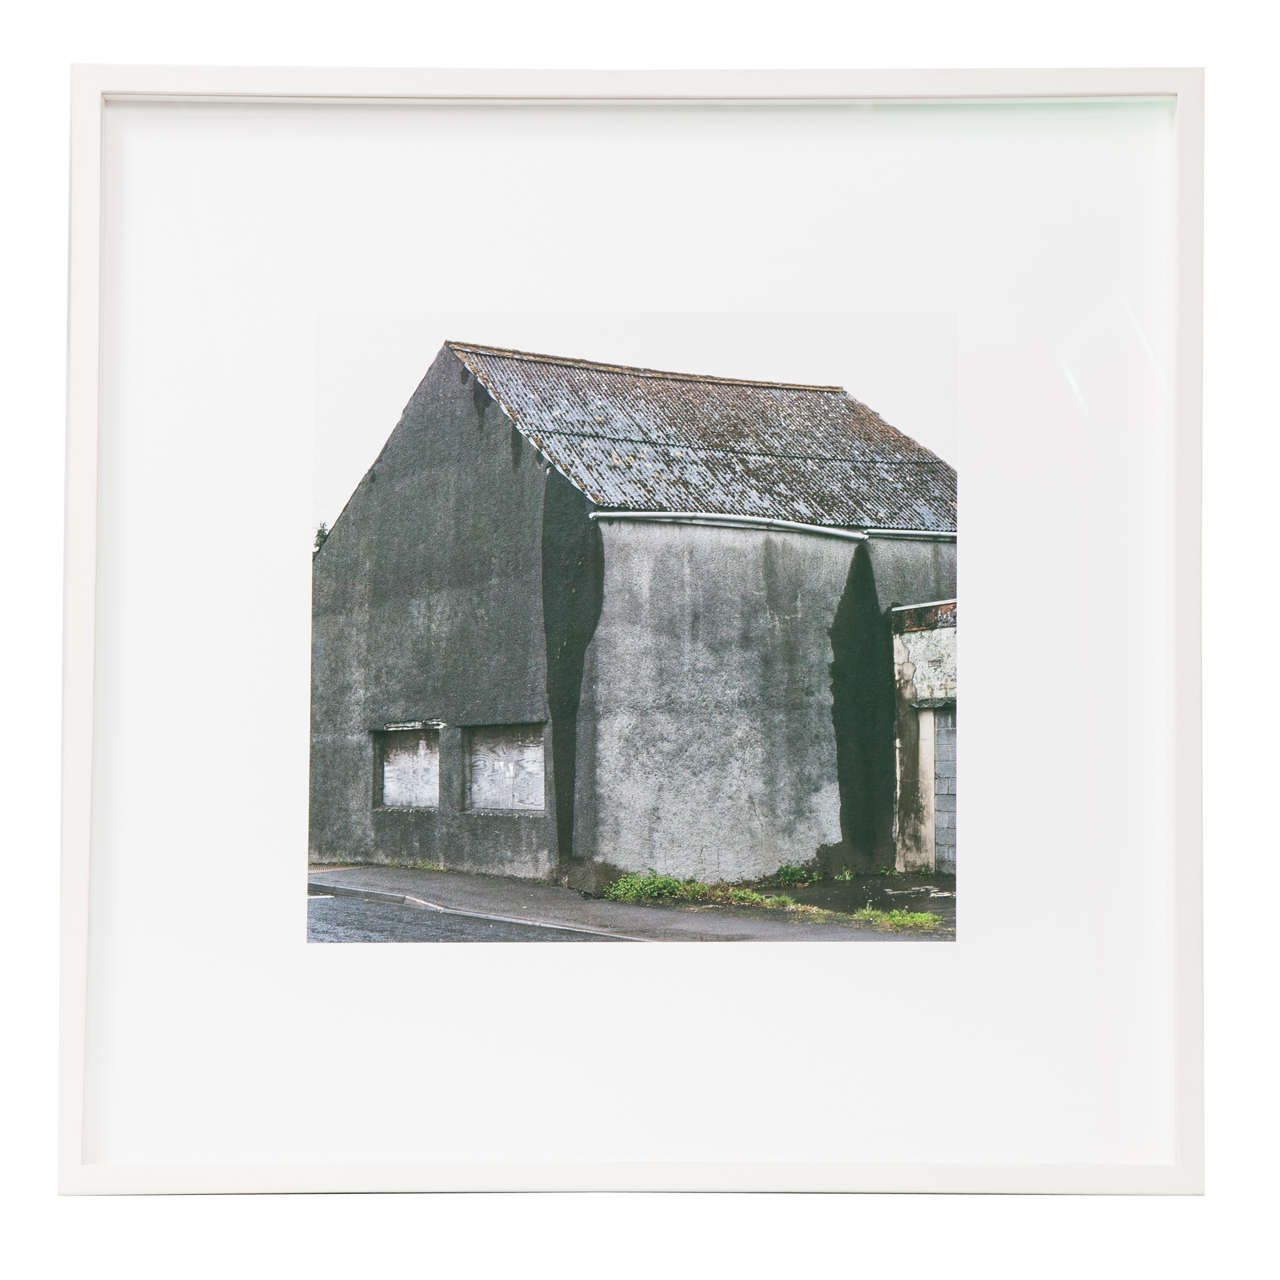 Christopher Sharples - Deserted Building